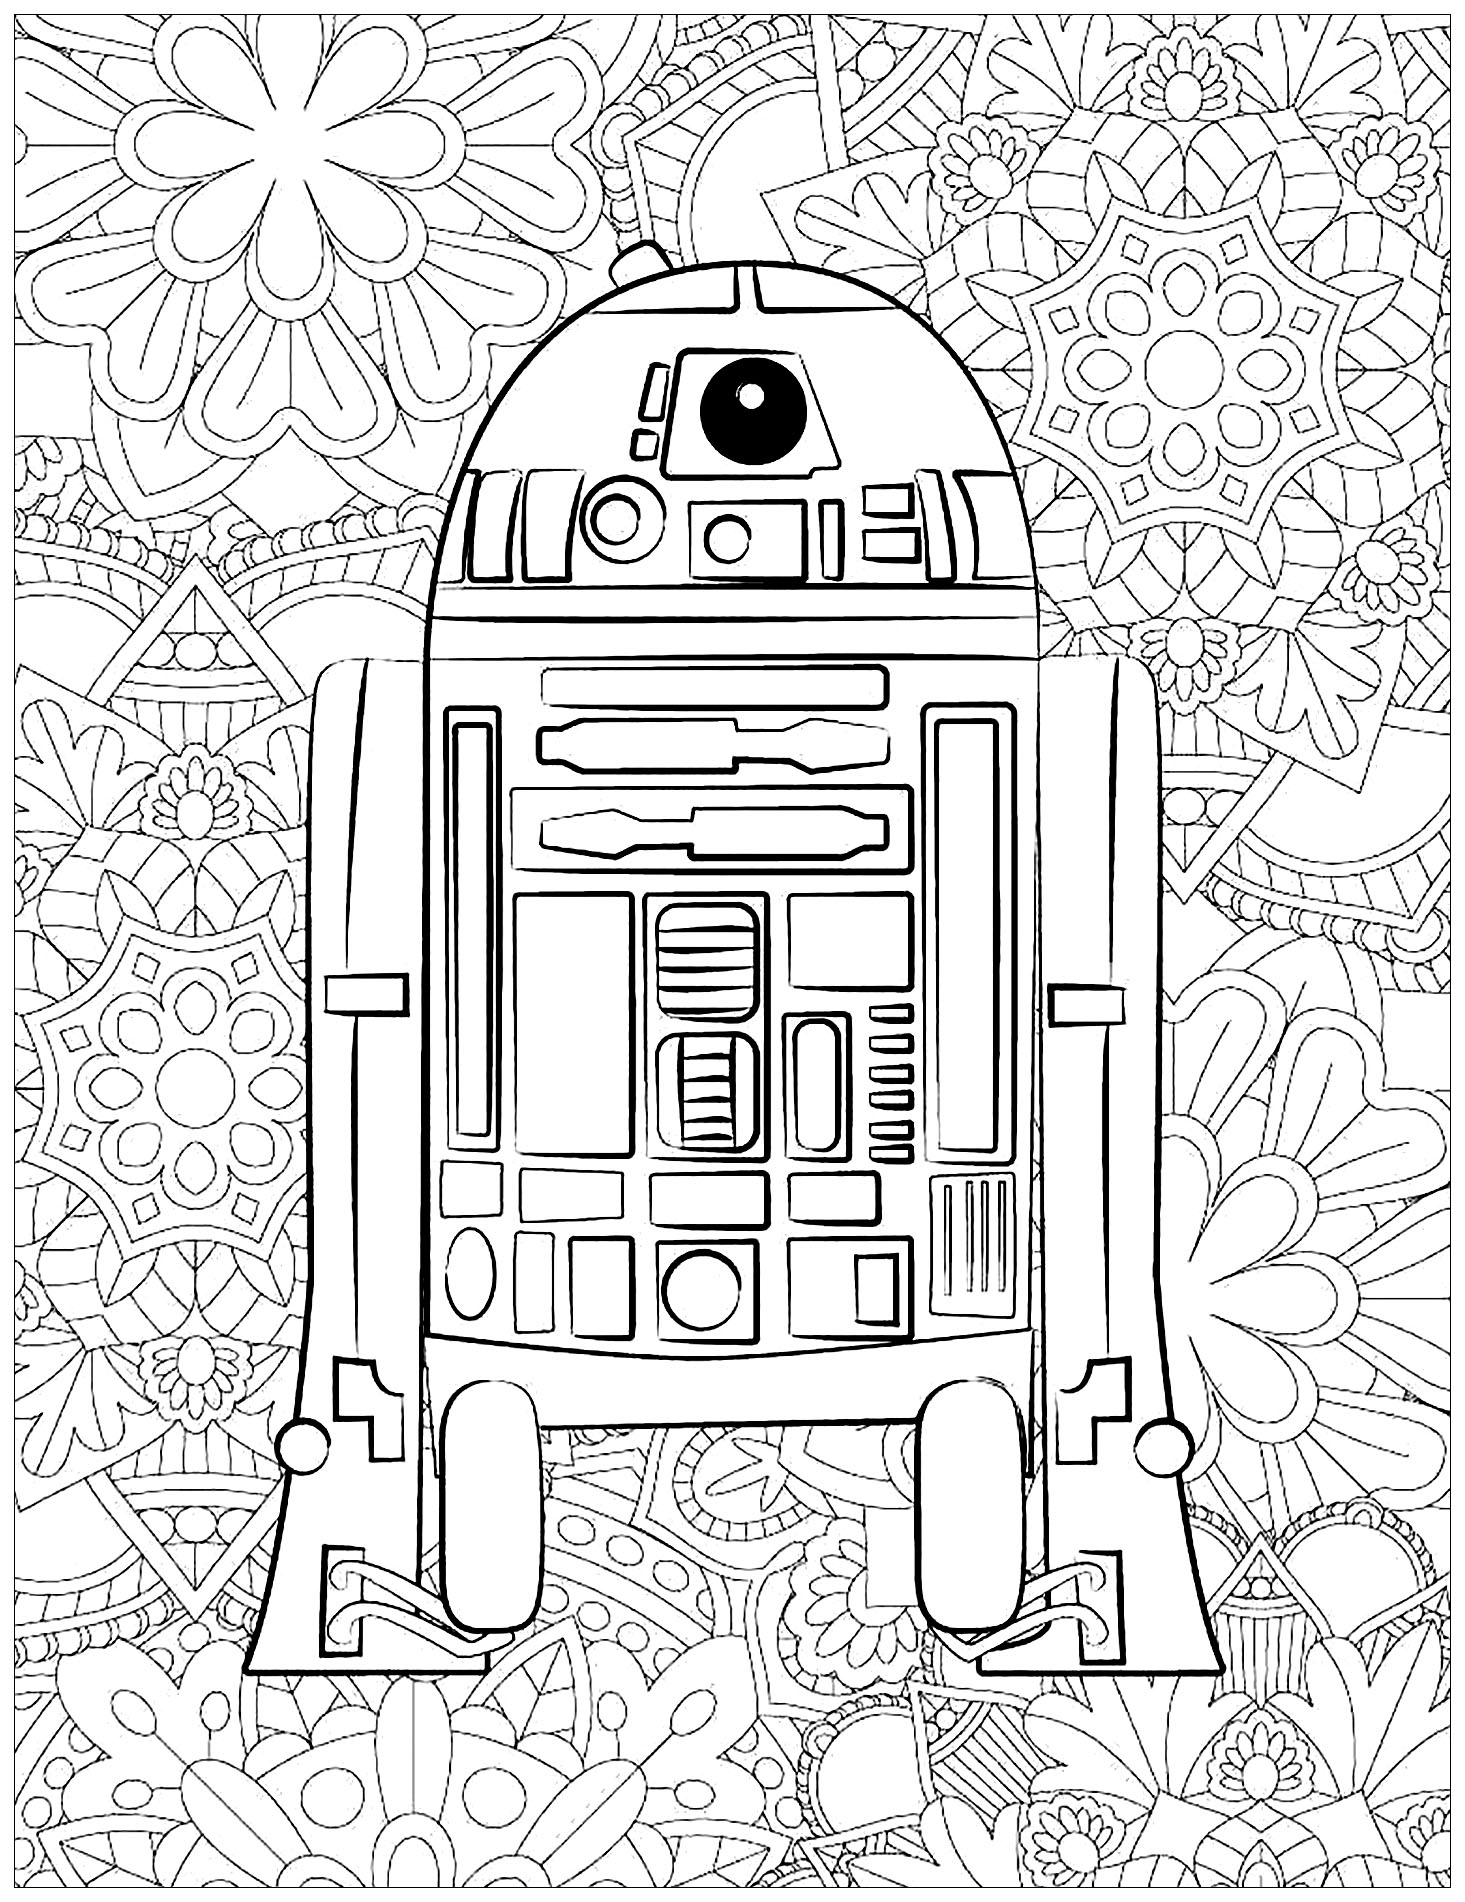 star wars coloring pages for kids star wars to color for children star wars kids coloring wars for star coloring kids pages